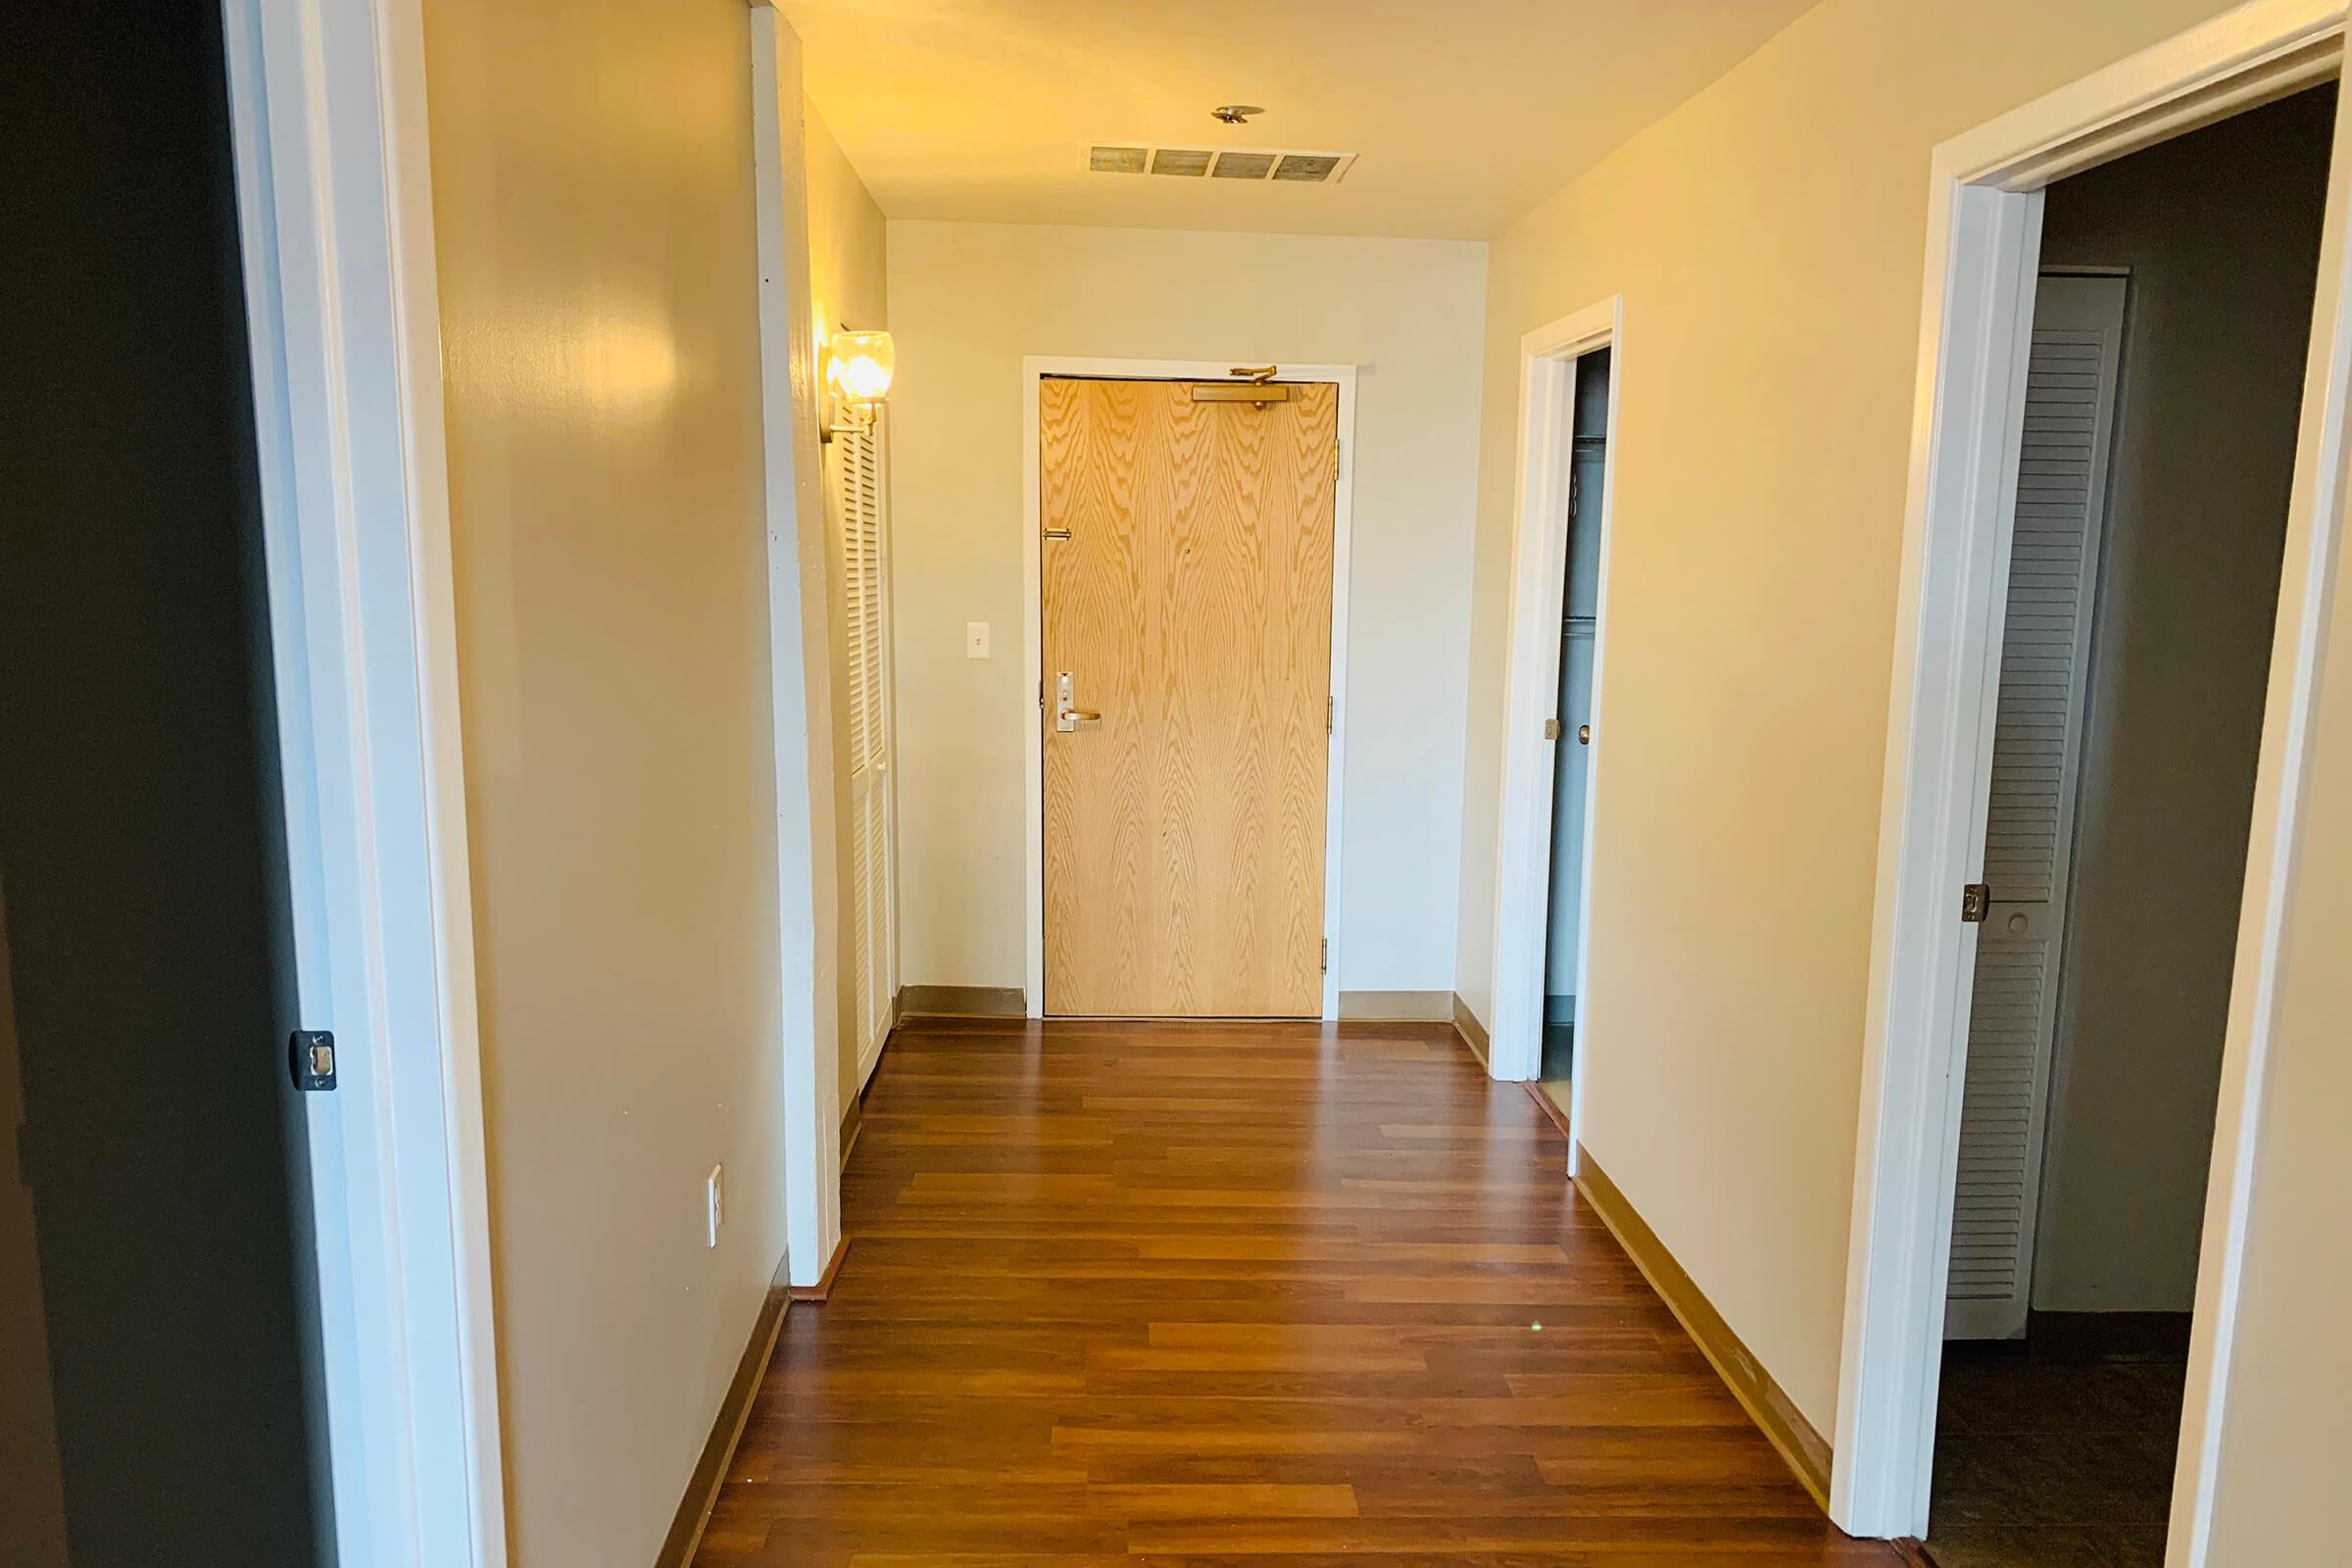 a wood door in a room